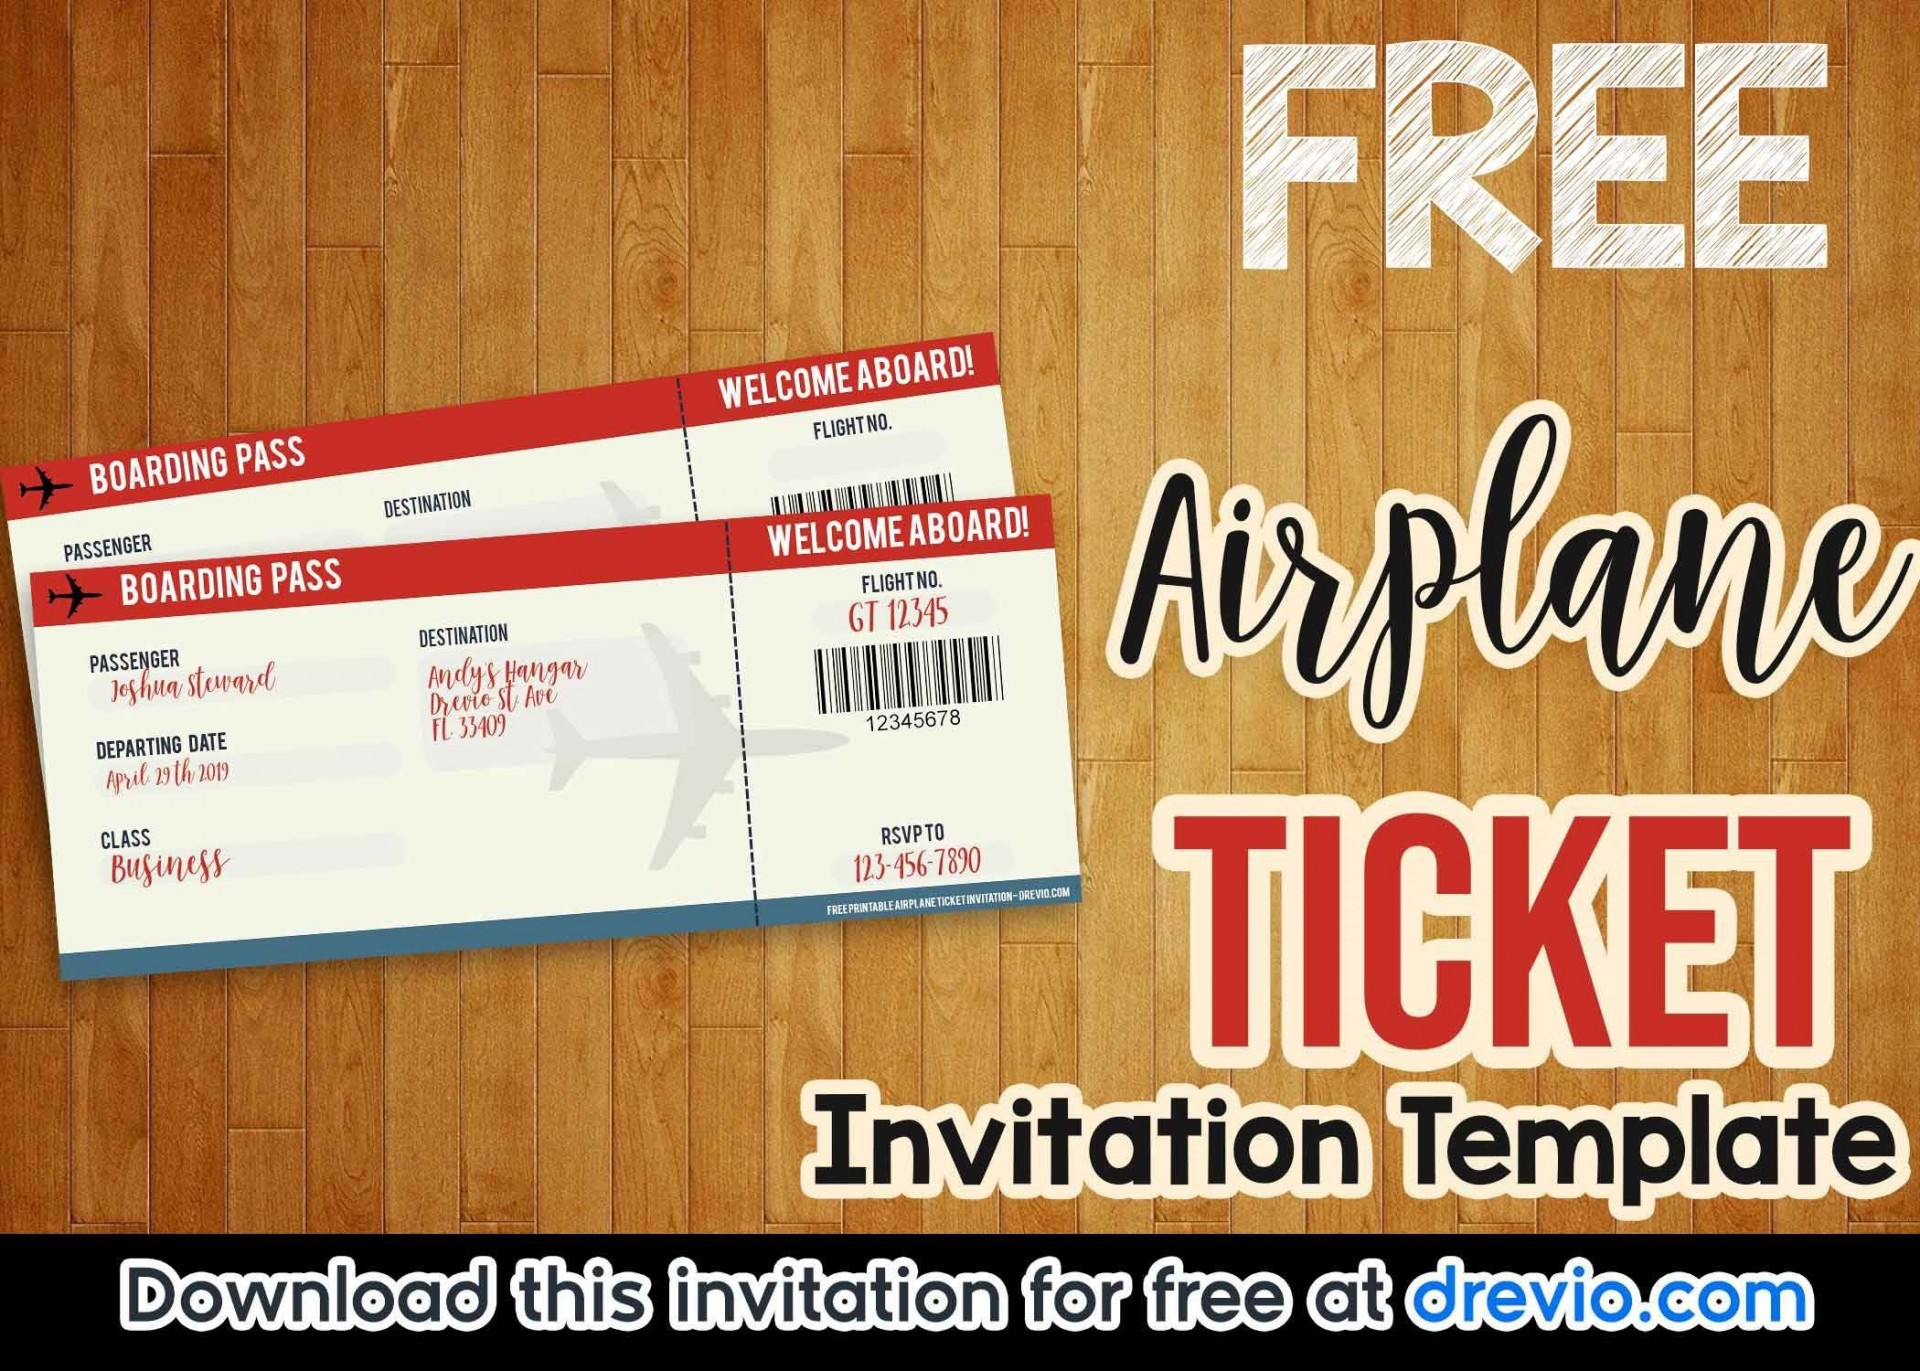 003 Rare Football Ticket Invitation Template Free Concept  Printable Party Download1920